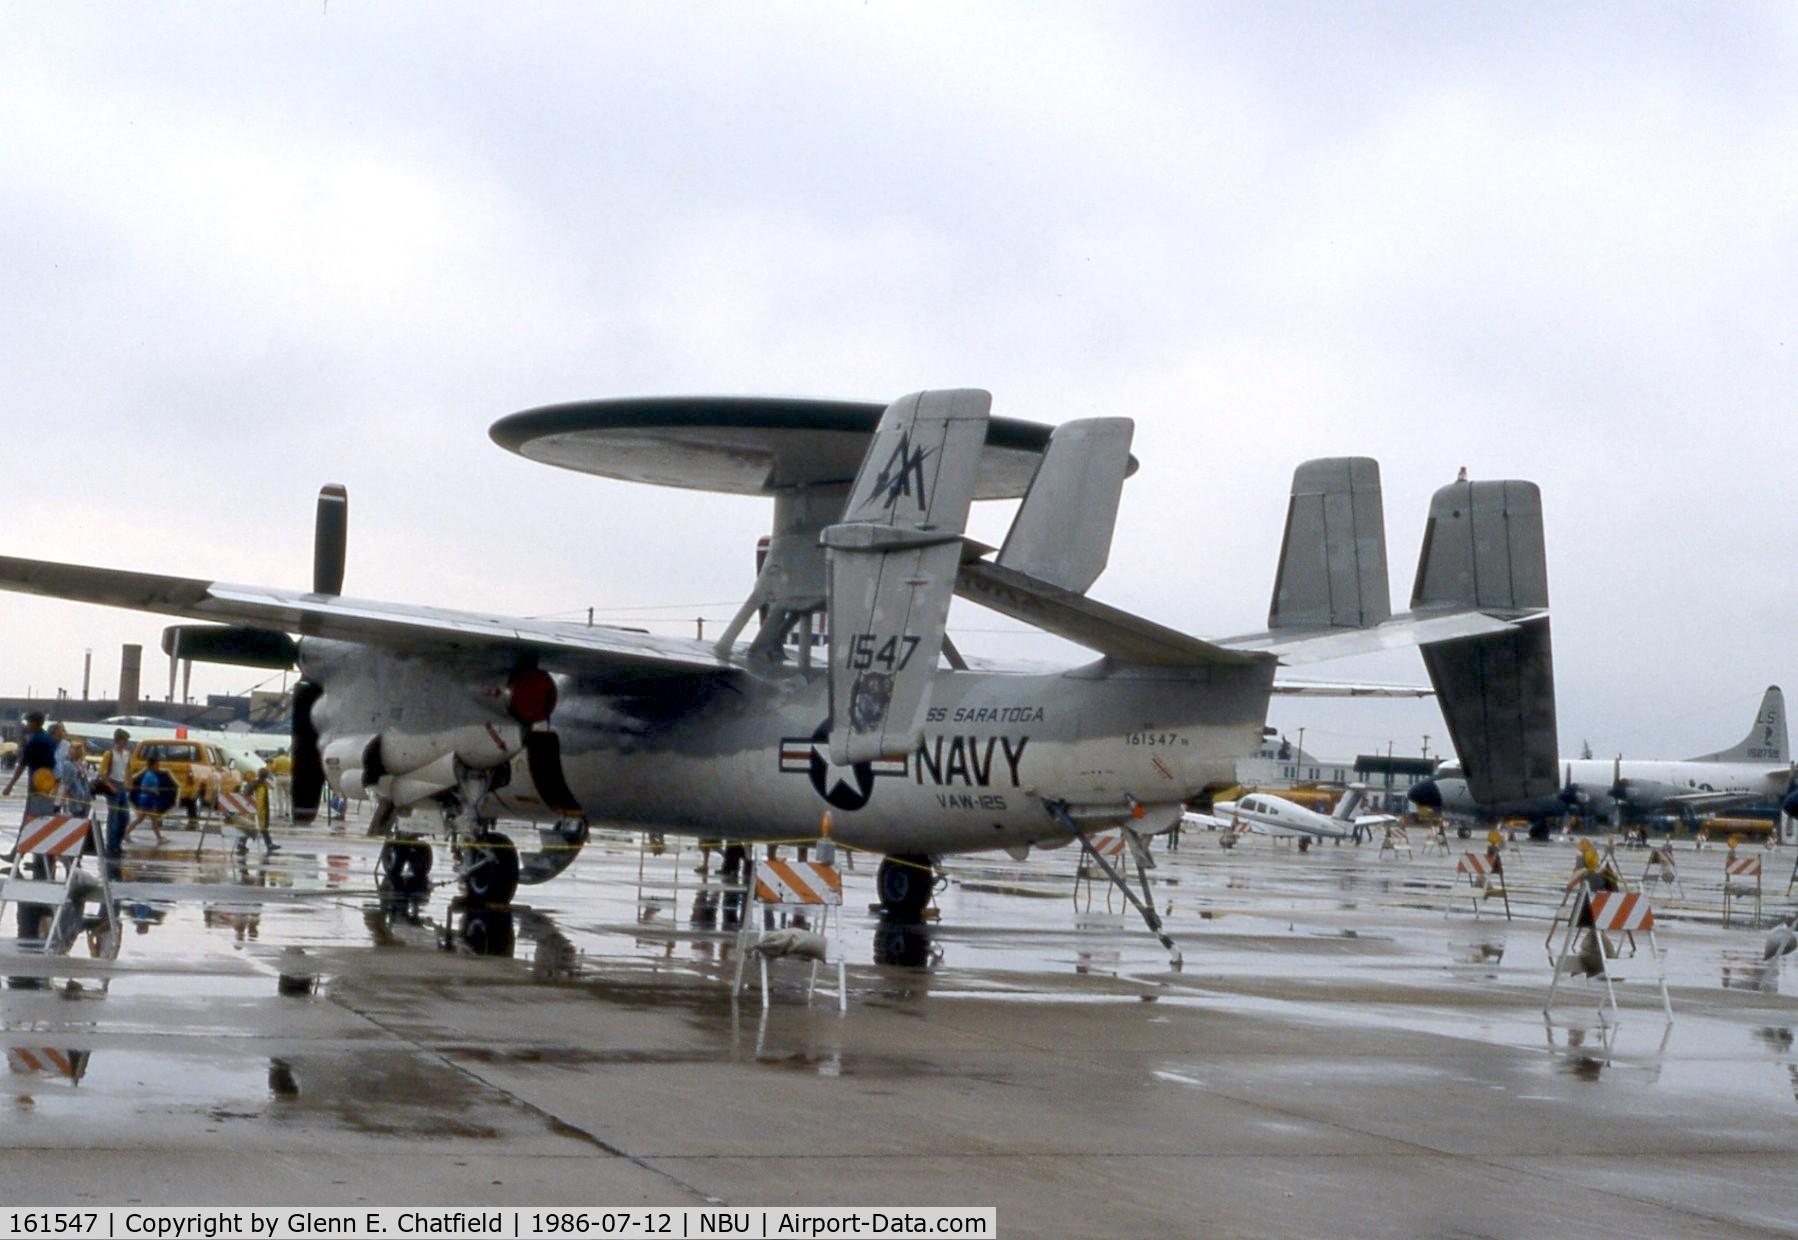 161547, Grumman E-2C Hawkeye C/N A080, E-2C at the open house